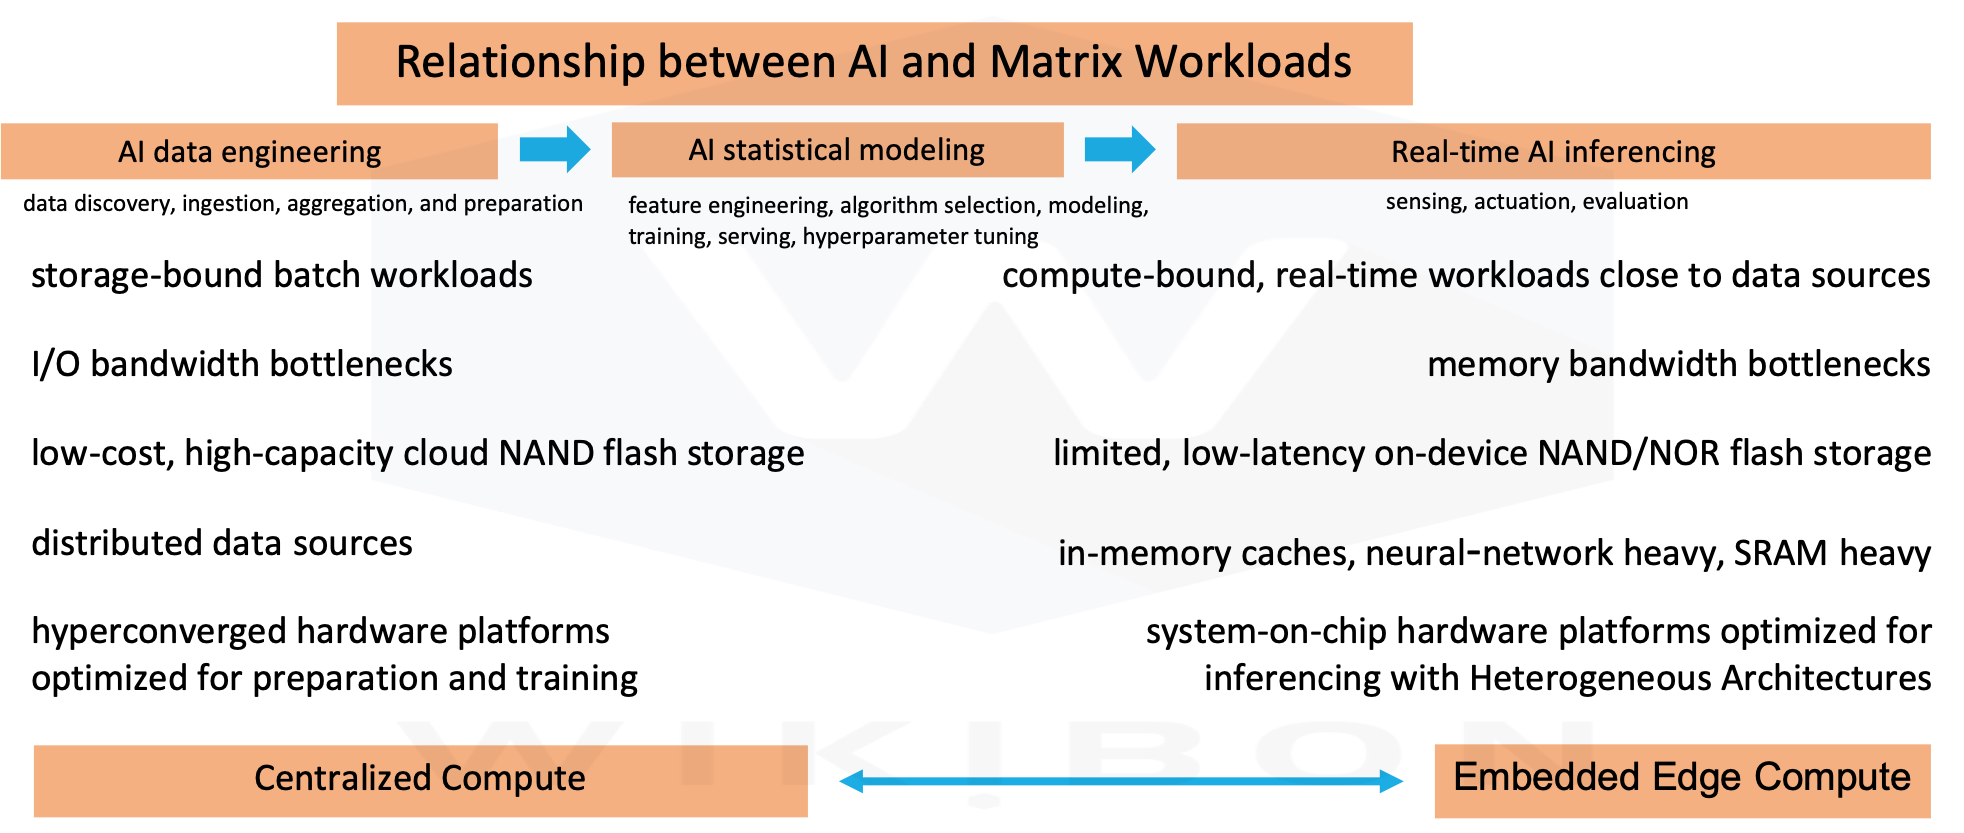 Relationship between Matrix Workloads and AI